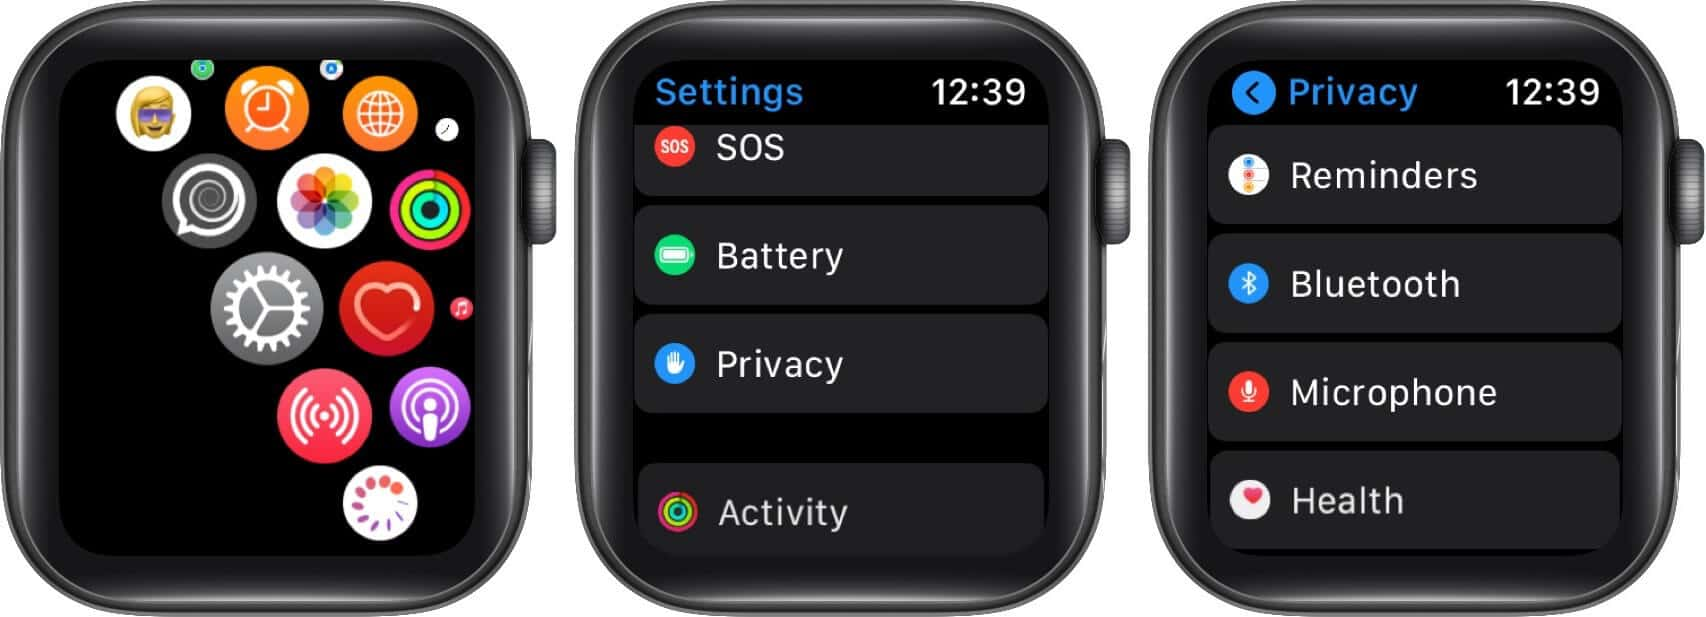 open settings tap on privacy and then tap on microphone on apple watch